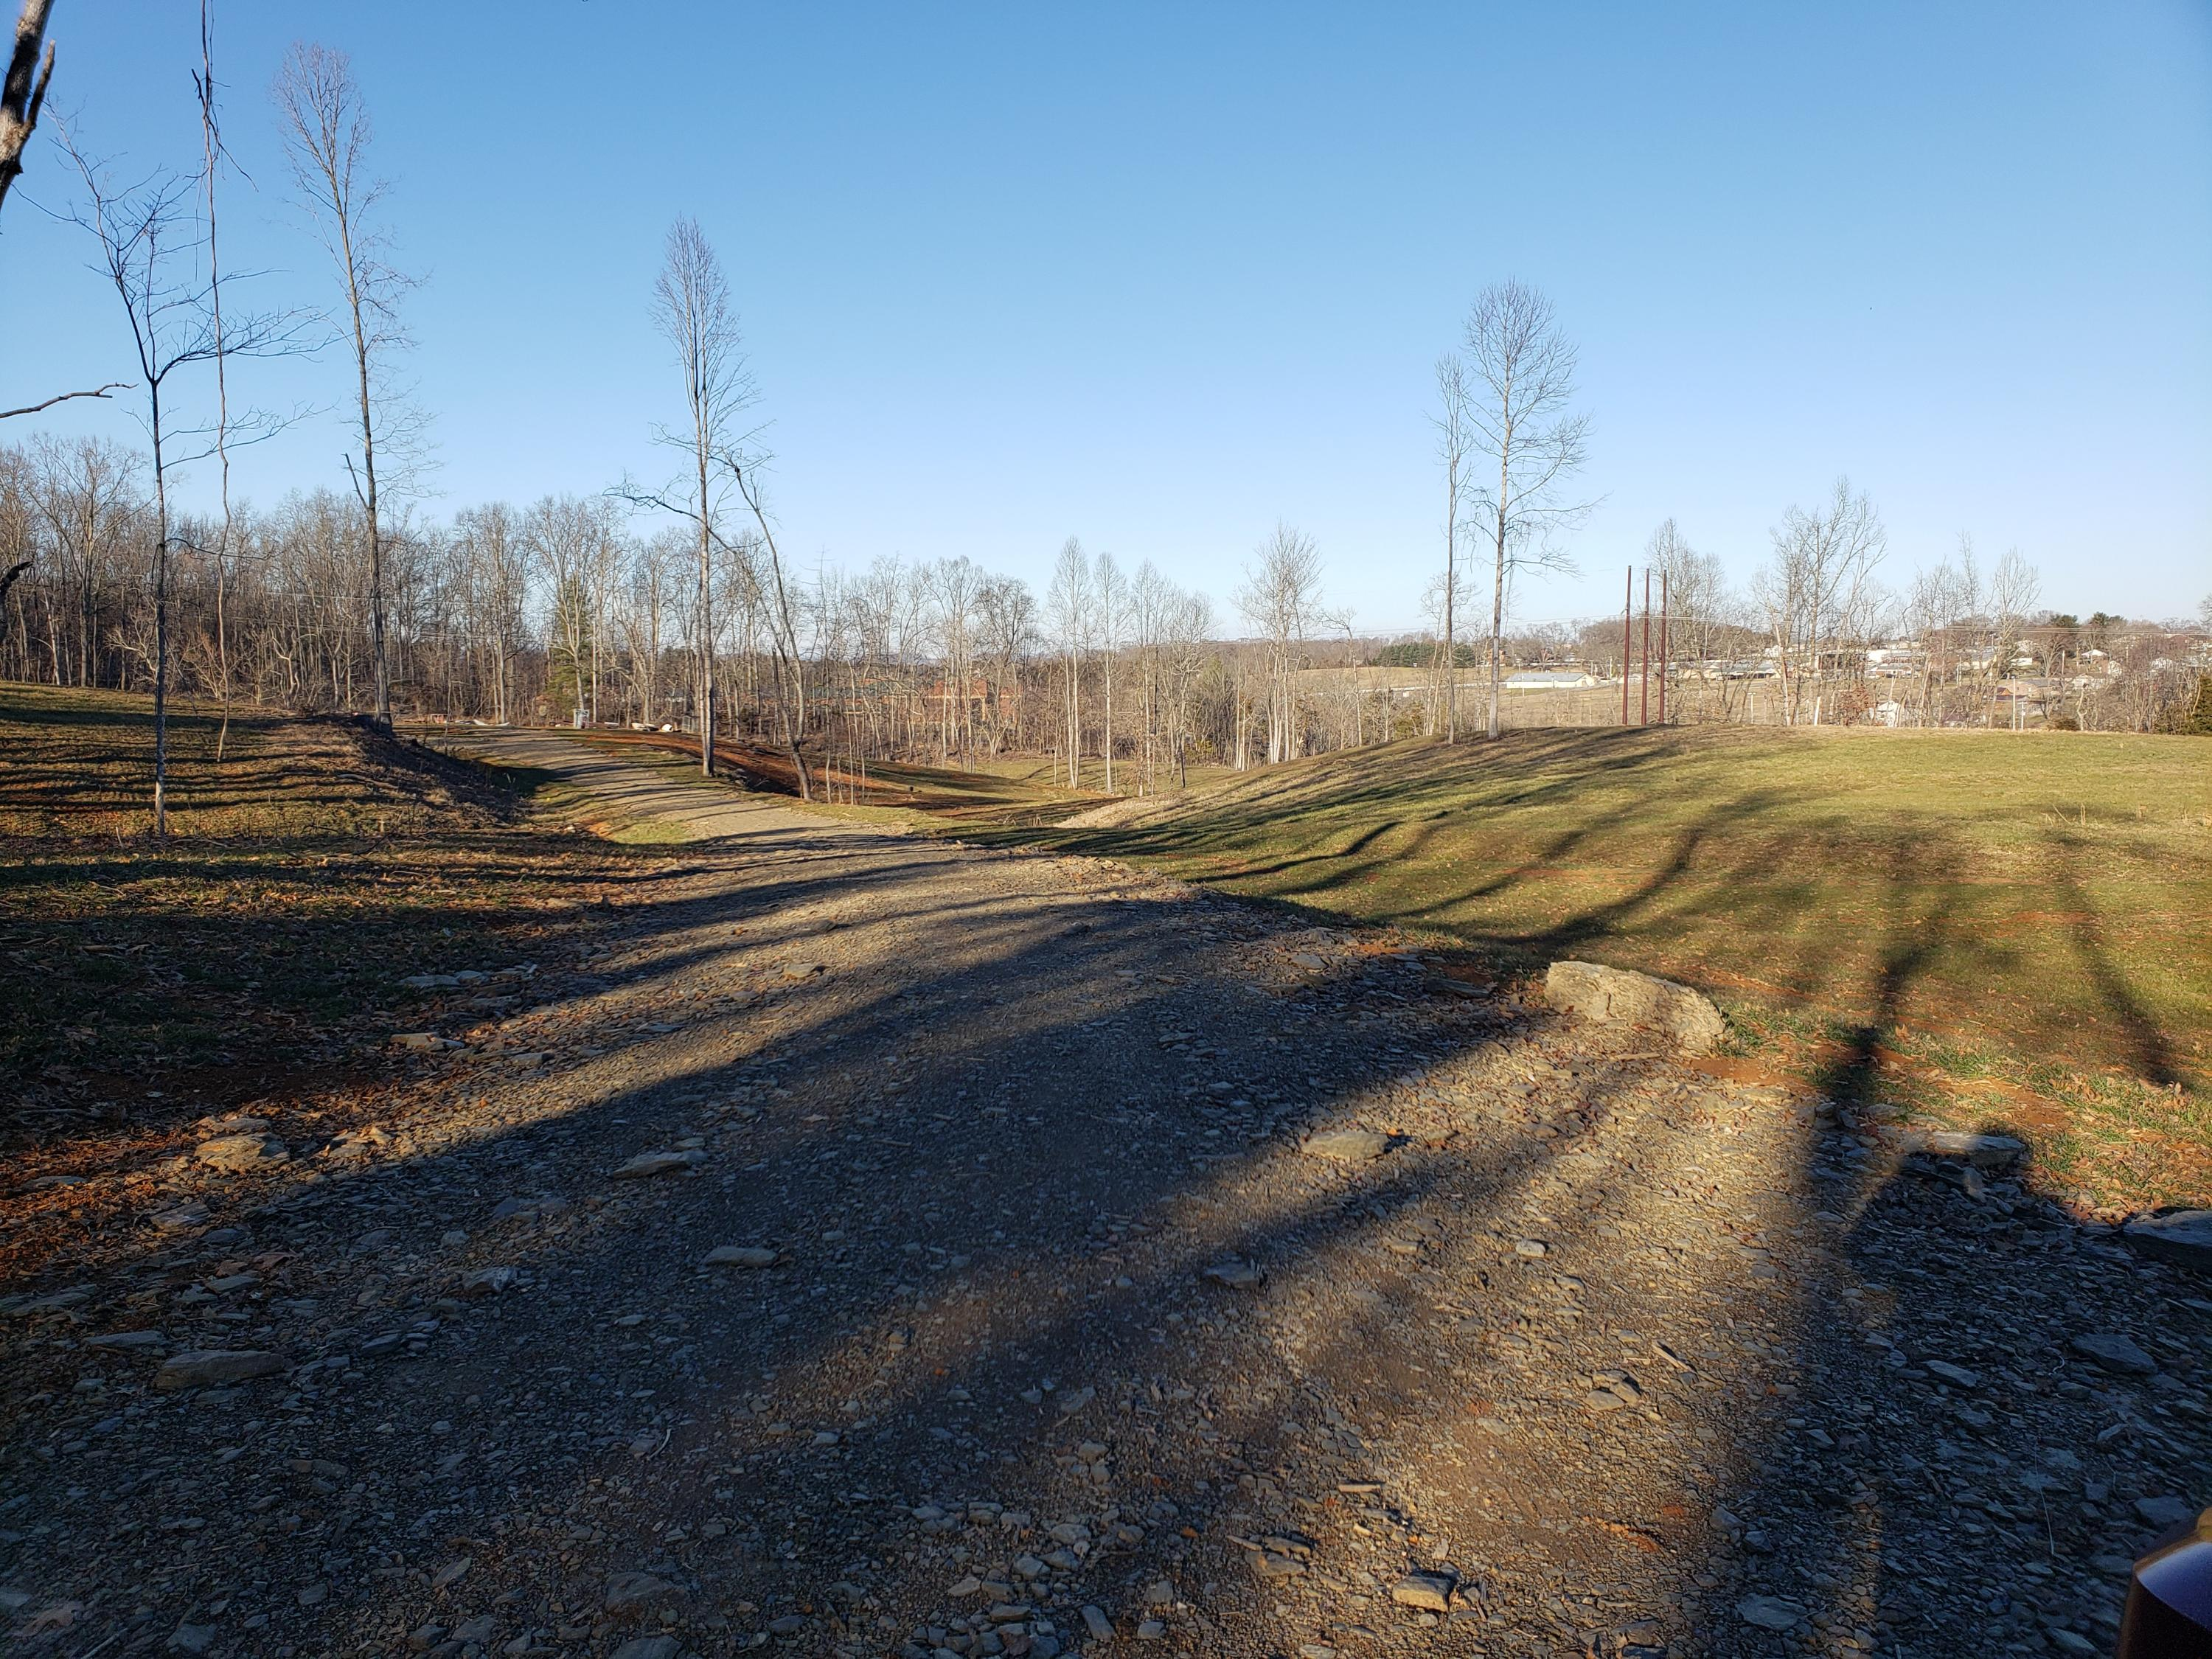 Lot 2 Ford Lane Road, Johnson City, Tennessee 37615, ,Lots And Land,For Sale,Lot 2 Ford Lane Road,9918717